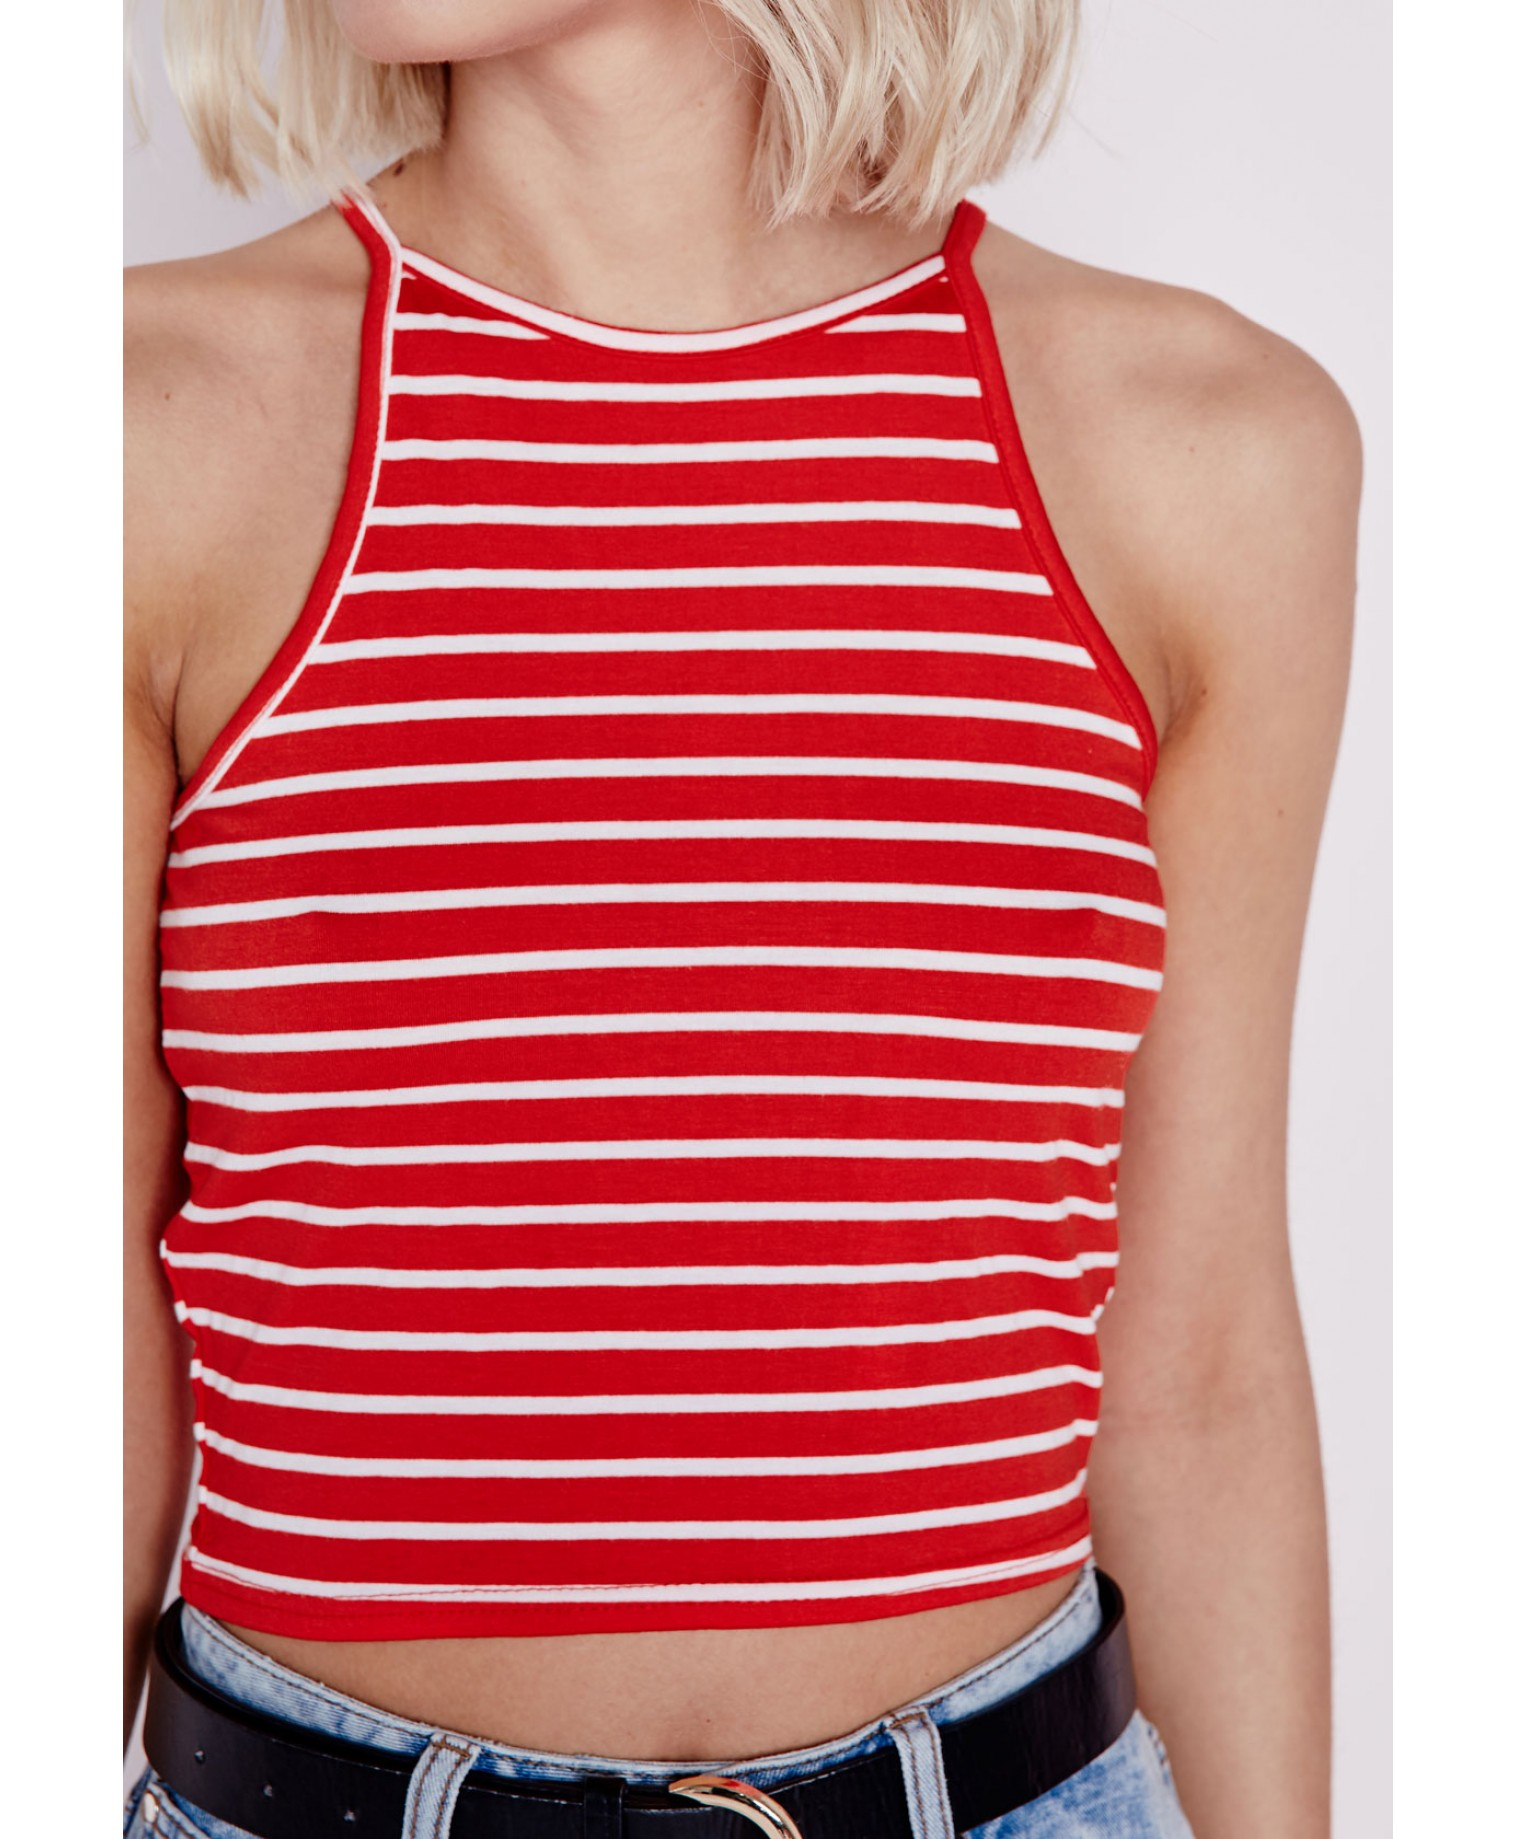 7034d7d495e31 Lyst - Missguided Striped High Neck Crop Top Red in Red